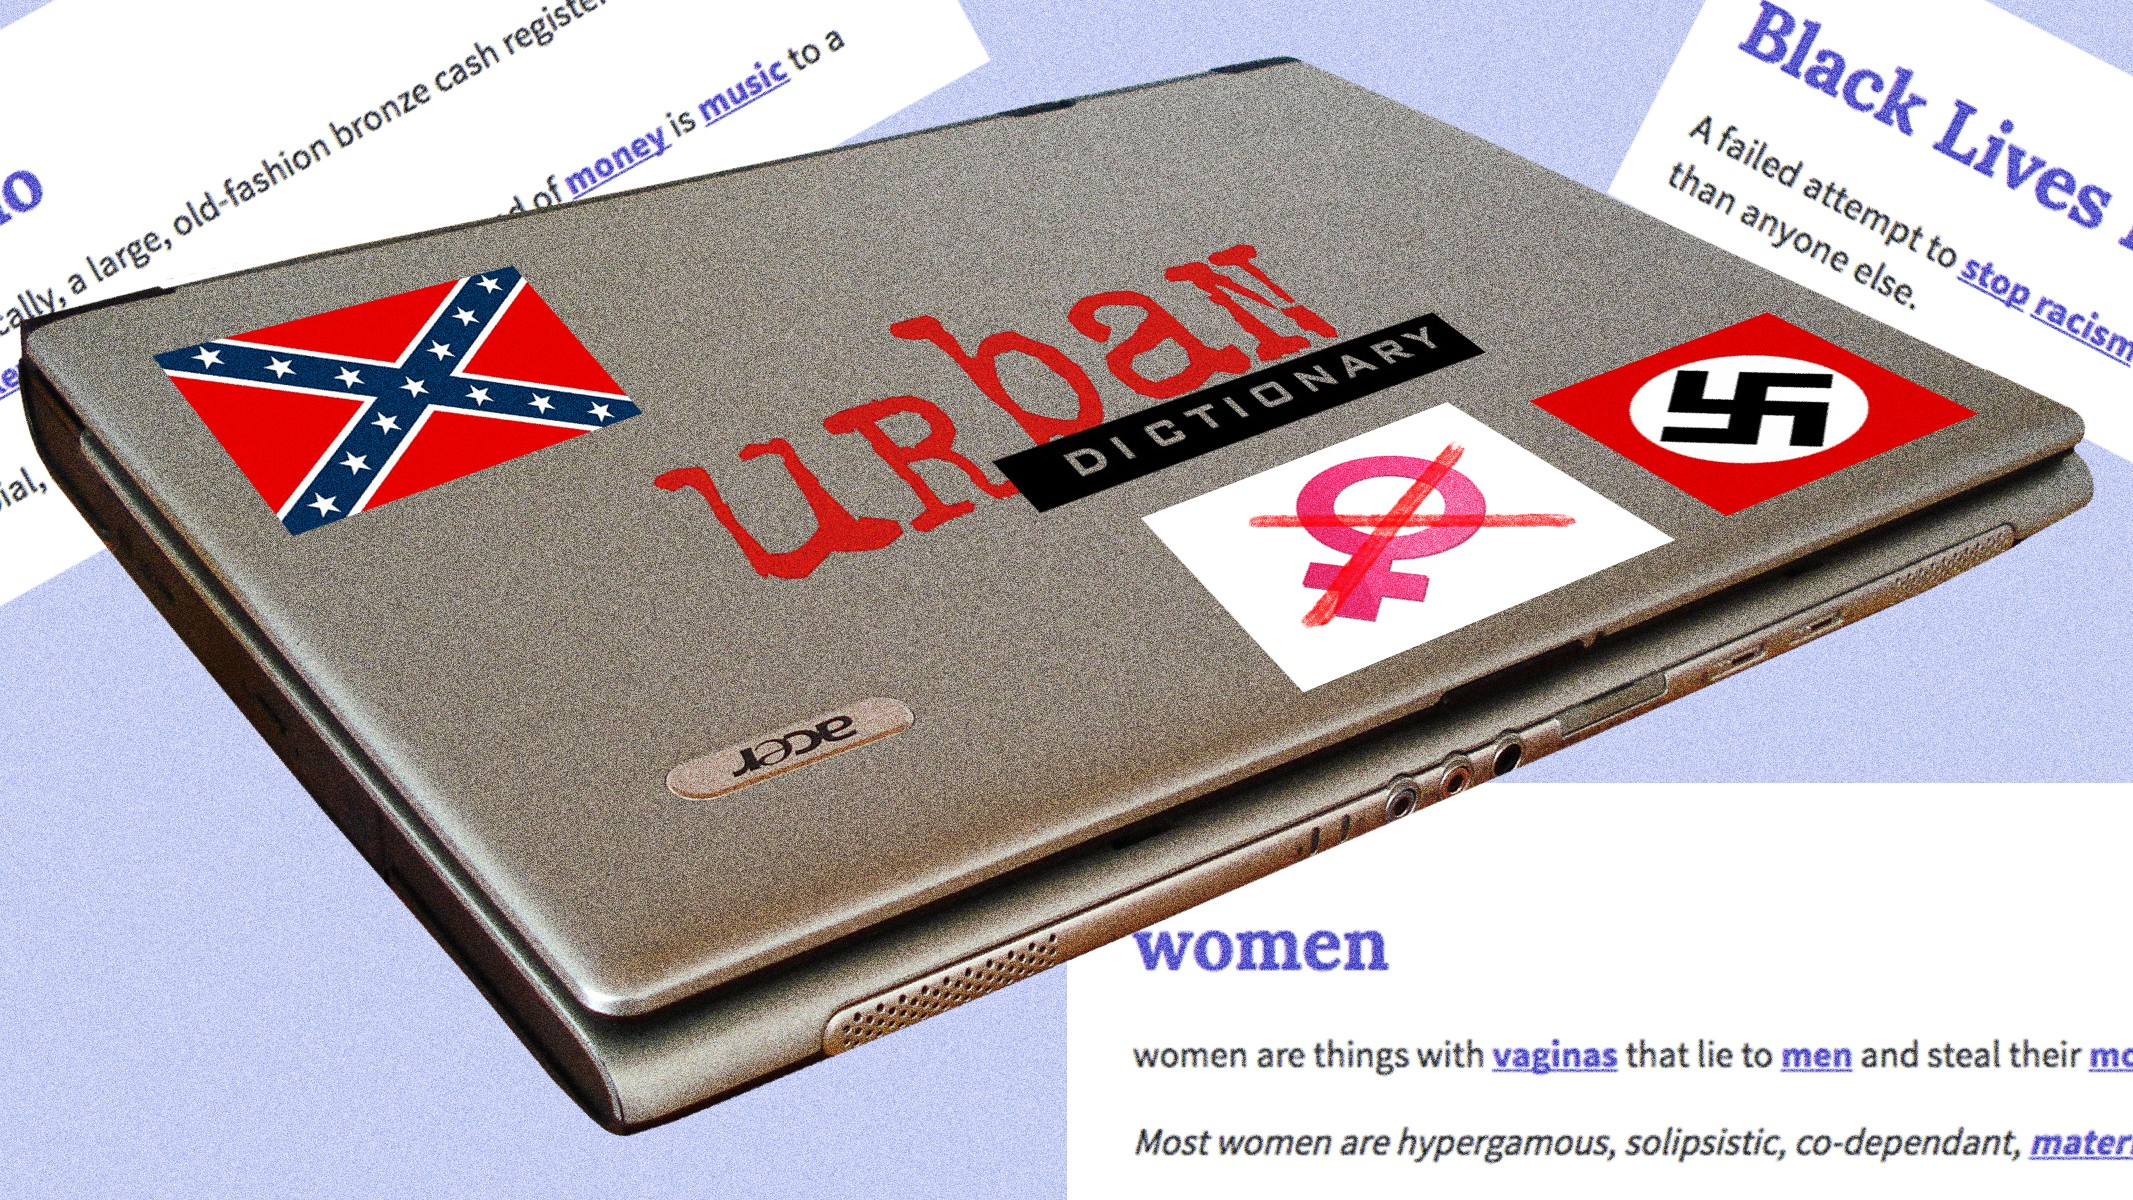 How Urban Dictionary Became A Cesspool For Racists And Misogynists